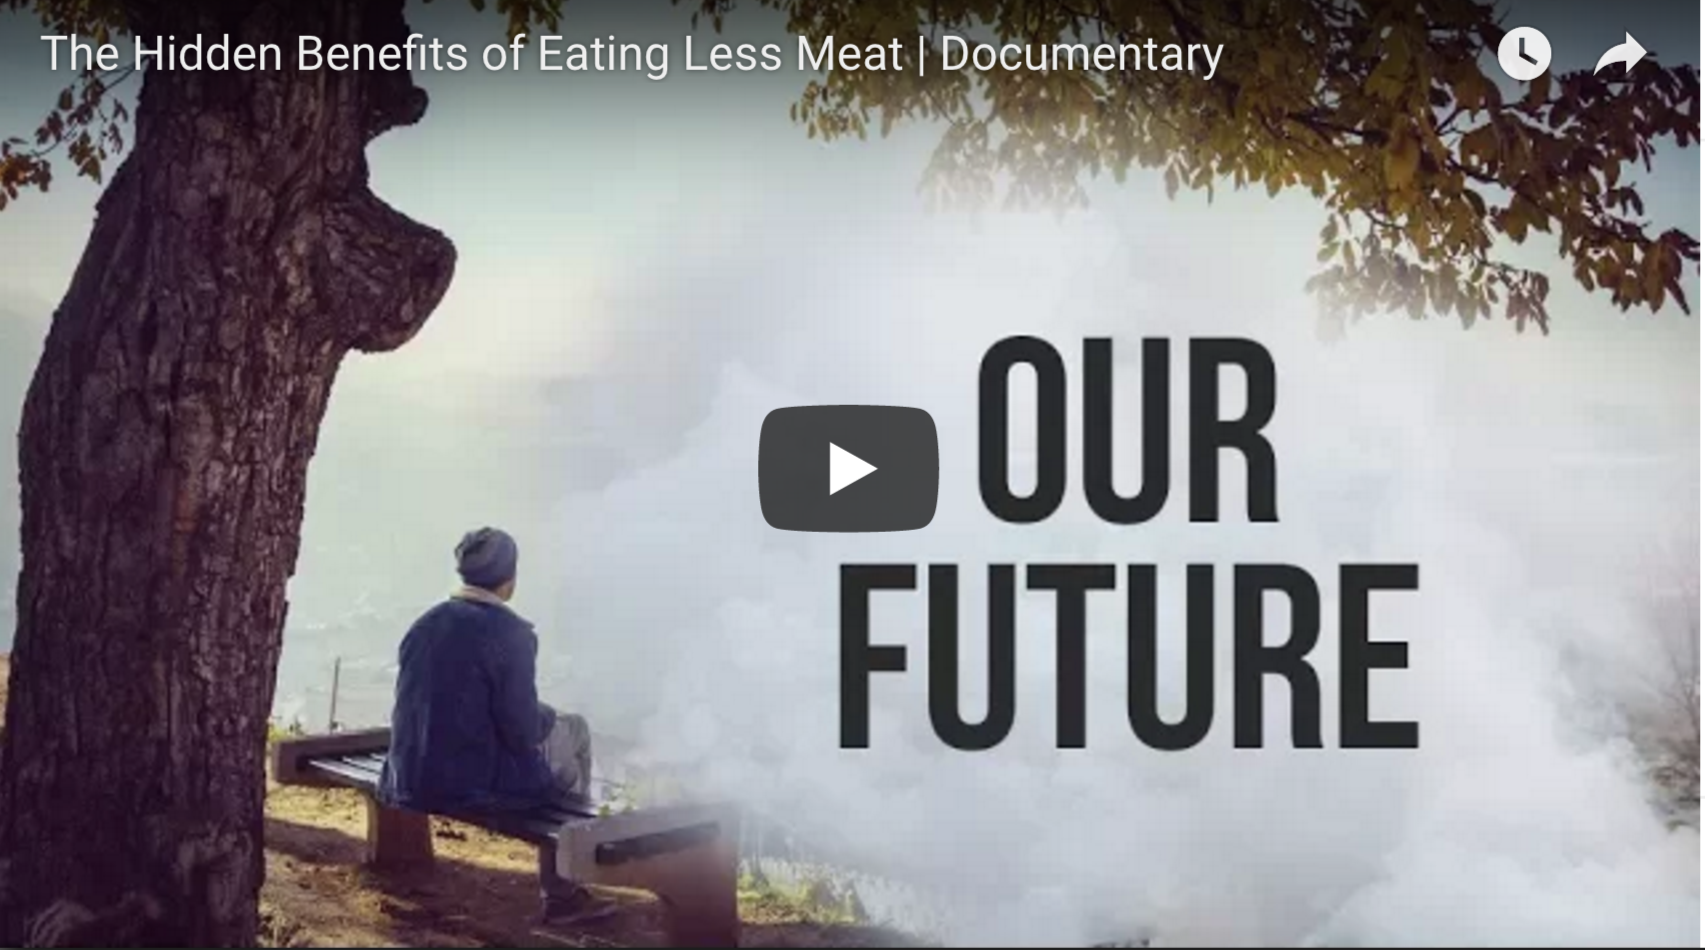 The Hidden Benefits of Eating Less Meat | Documentary | VeganFlix